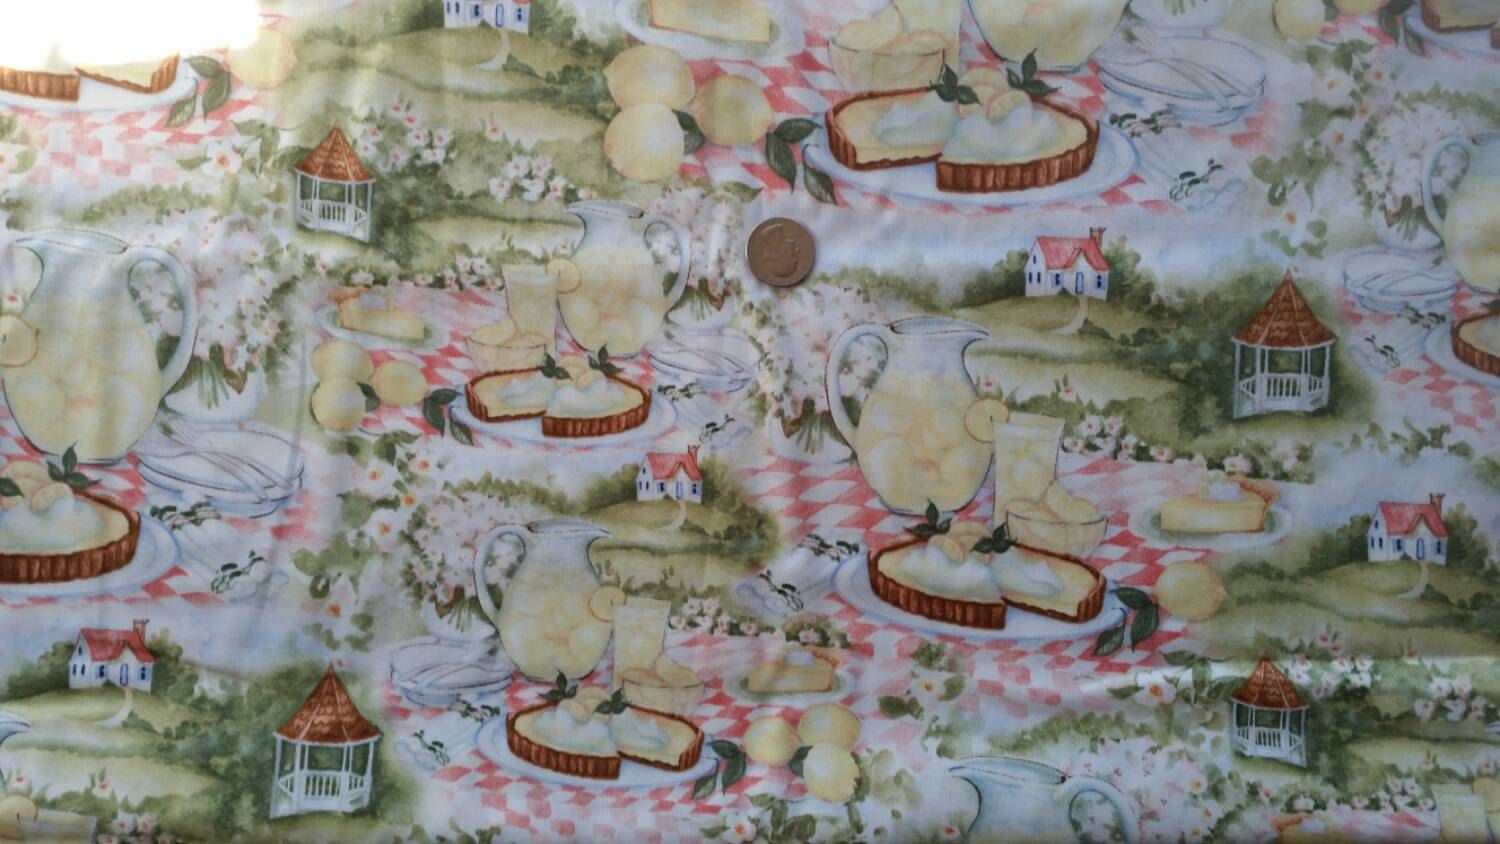 sewing quilting fabric megumi forest cottoneer material quilt bundle panorama total sakakibara fabrics modern product steel by copy sheep cotton wanderings